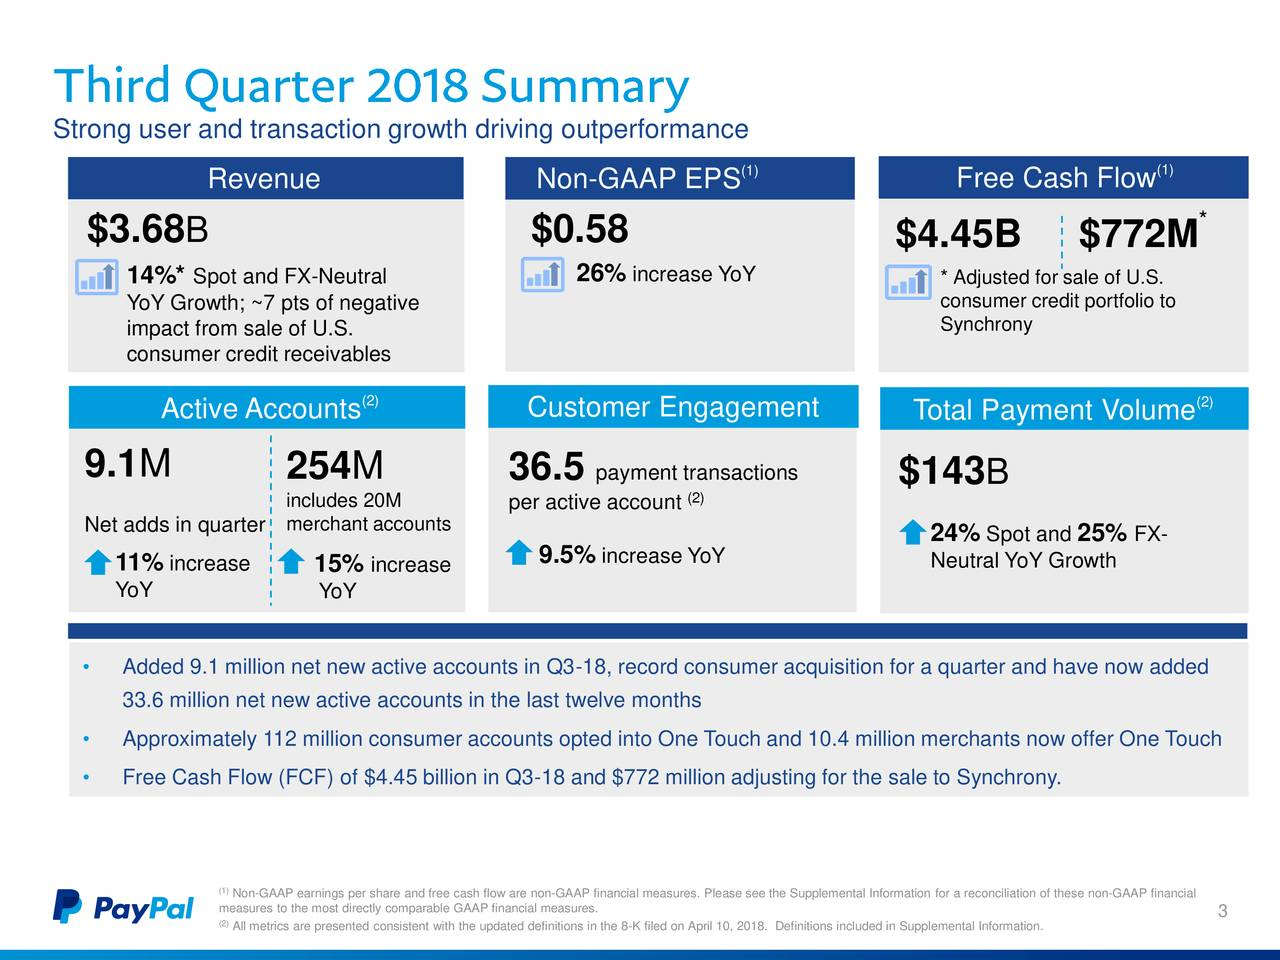 (1) (1) Revenue Non-GAAP EPS Free Cash Flow $3.68 B $0.58 * $4.45B $772M 14%* Spot and FX-Neutral 26% increase YoY * Adjusted for sale of U.S. YoY Growth; ~7 pts of negative consumer credit portfolio to impact from sale of U.S. Synchrony consumer credit receivables (2) (2) Active Accounts Customer Engagement Total Payment Volume 9.1M 254M 36.5 payment transactions (2) $143 B includes 20M per active account Net adds in quarterrchant accounts 24% Spot and25% FX- 11% increase 15% increase 9.5% increase YoY Neutral YoY Growth YoY YoY • Added 9.1 million net new active accounts in Q3-18, record consumer acquisition for a quarter and have now added 33.6 million net new active accounts in the last twelve months • Approximately 112 million consumer accounts opted into One Touch and 10.4 million merchants now offer One Touch • Free Cash Flow (FCF) of $4.45 billion in Q3-18 and $772 million adjusting for the sale to Synchrony. (Non-GAAP earnings per share and free cash flow are non-GAAP financial measures. Please see the Supplemental Information for a reconciliation of these non-GAAP financial measures to the most directly comparable GAAP financial measures. 3 (All metrics are presented consistent with the updated definitions in the 8-K filed on April 10, 2018. Definitions included in Supplemental Information.